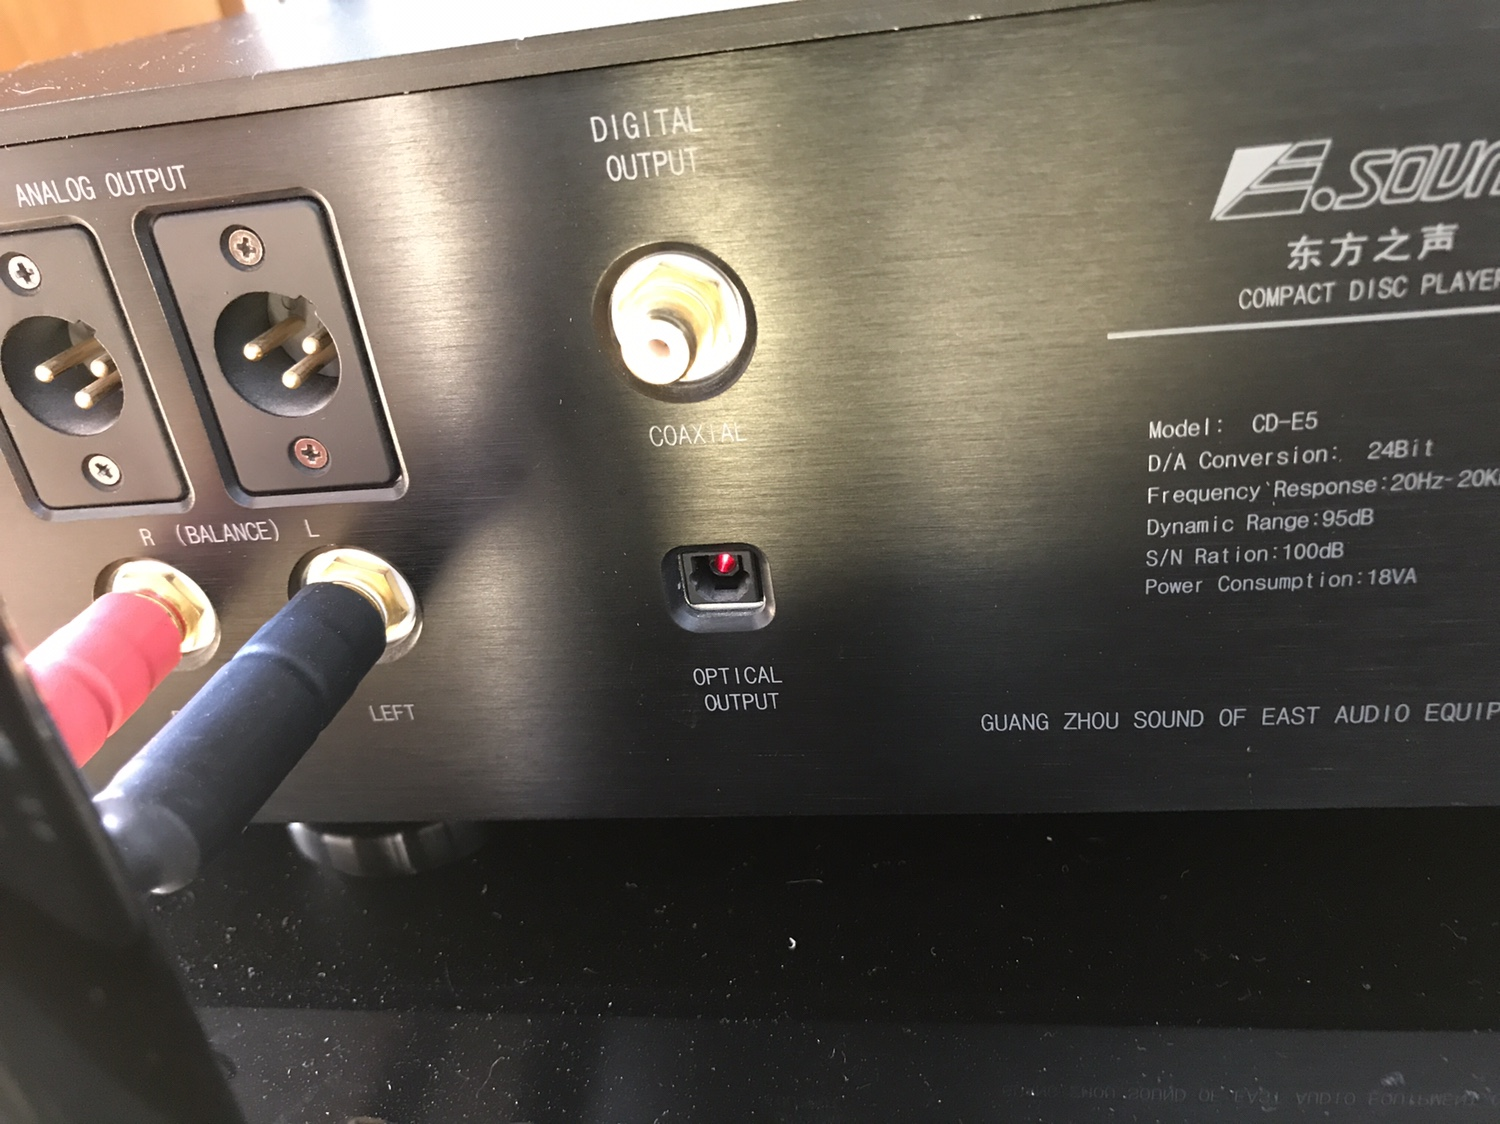 Esound Cd 5 Signature Edition Audio Enhancement For Analog Amplifier Philips Machanism Mounted On A 5mm Thick Aluminum Plate Optimum Stability G9 Pro Digital Servo System An Extreme High End Design To